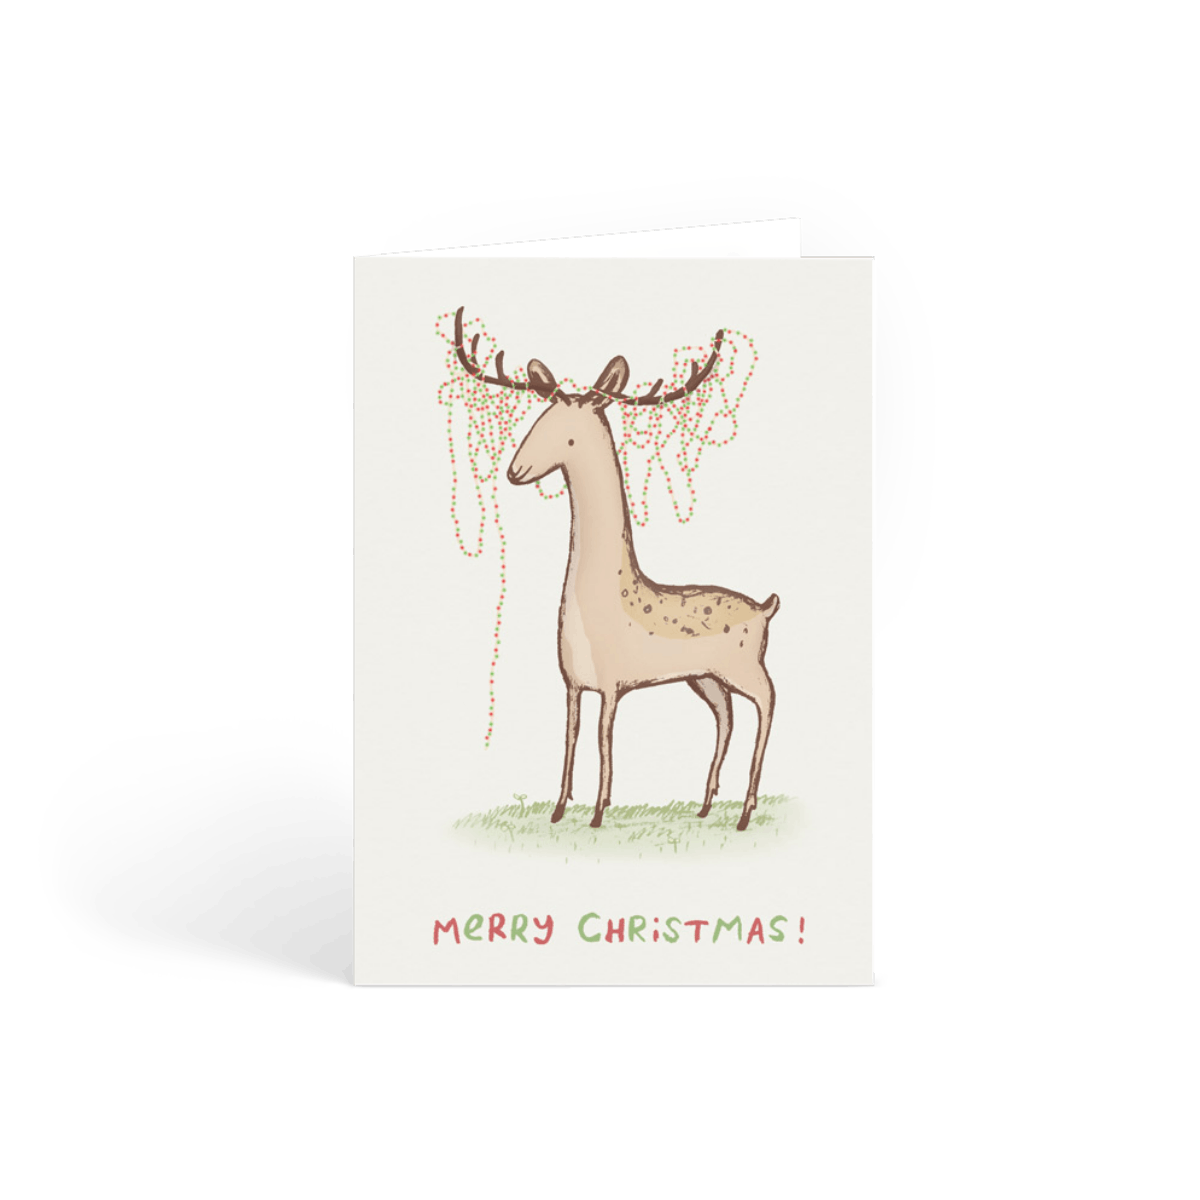 Https%3a%2f%2fwww.papier.com%2fproduct image%2f14544%2f2%2fchristmas deer 3879 front 1542210584.png?ixlib=rb 1.1